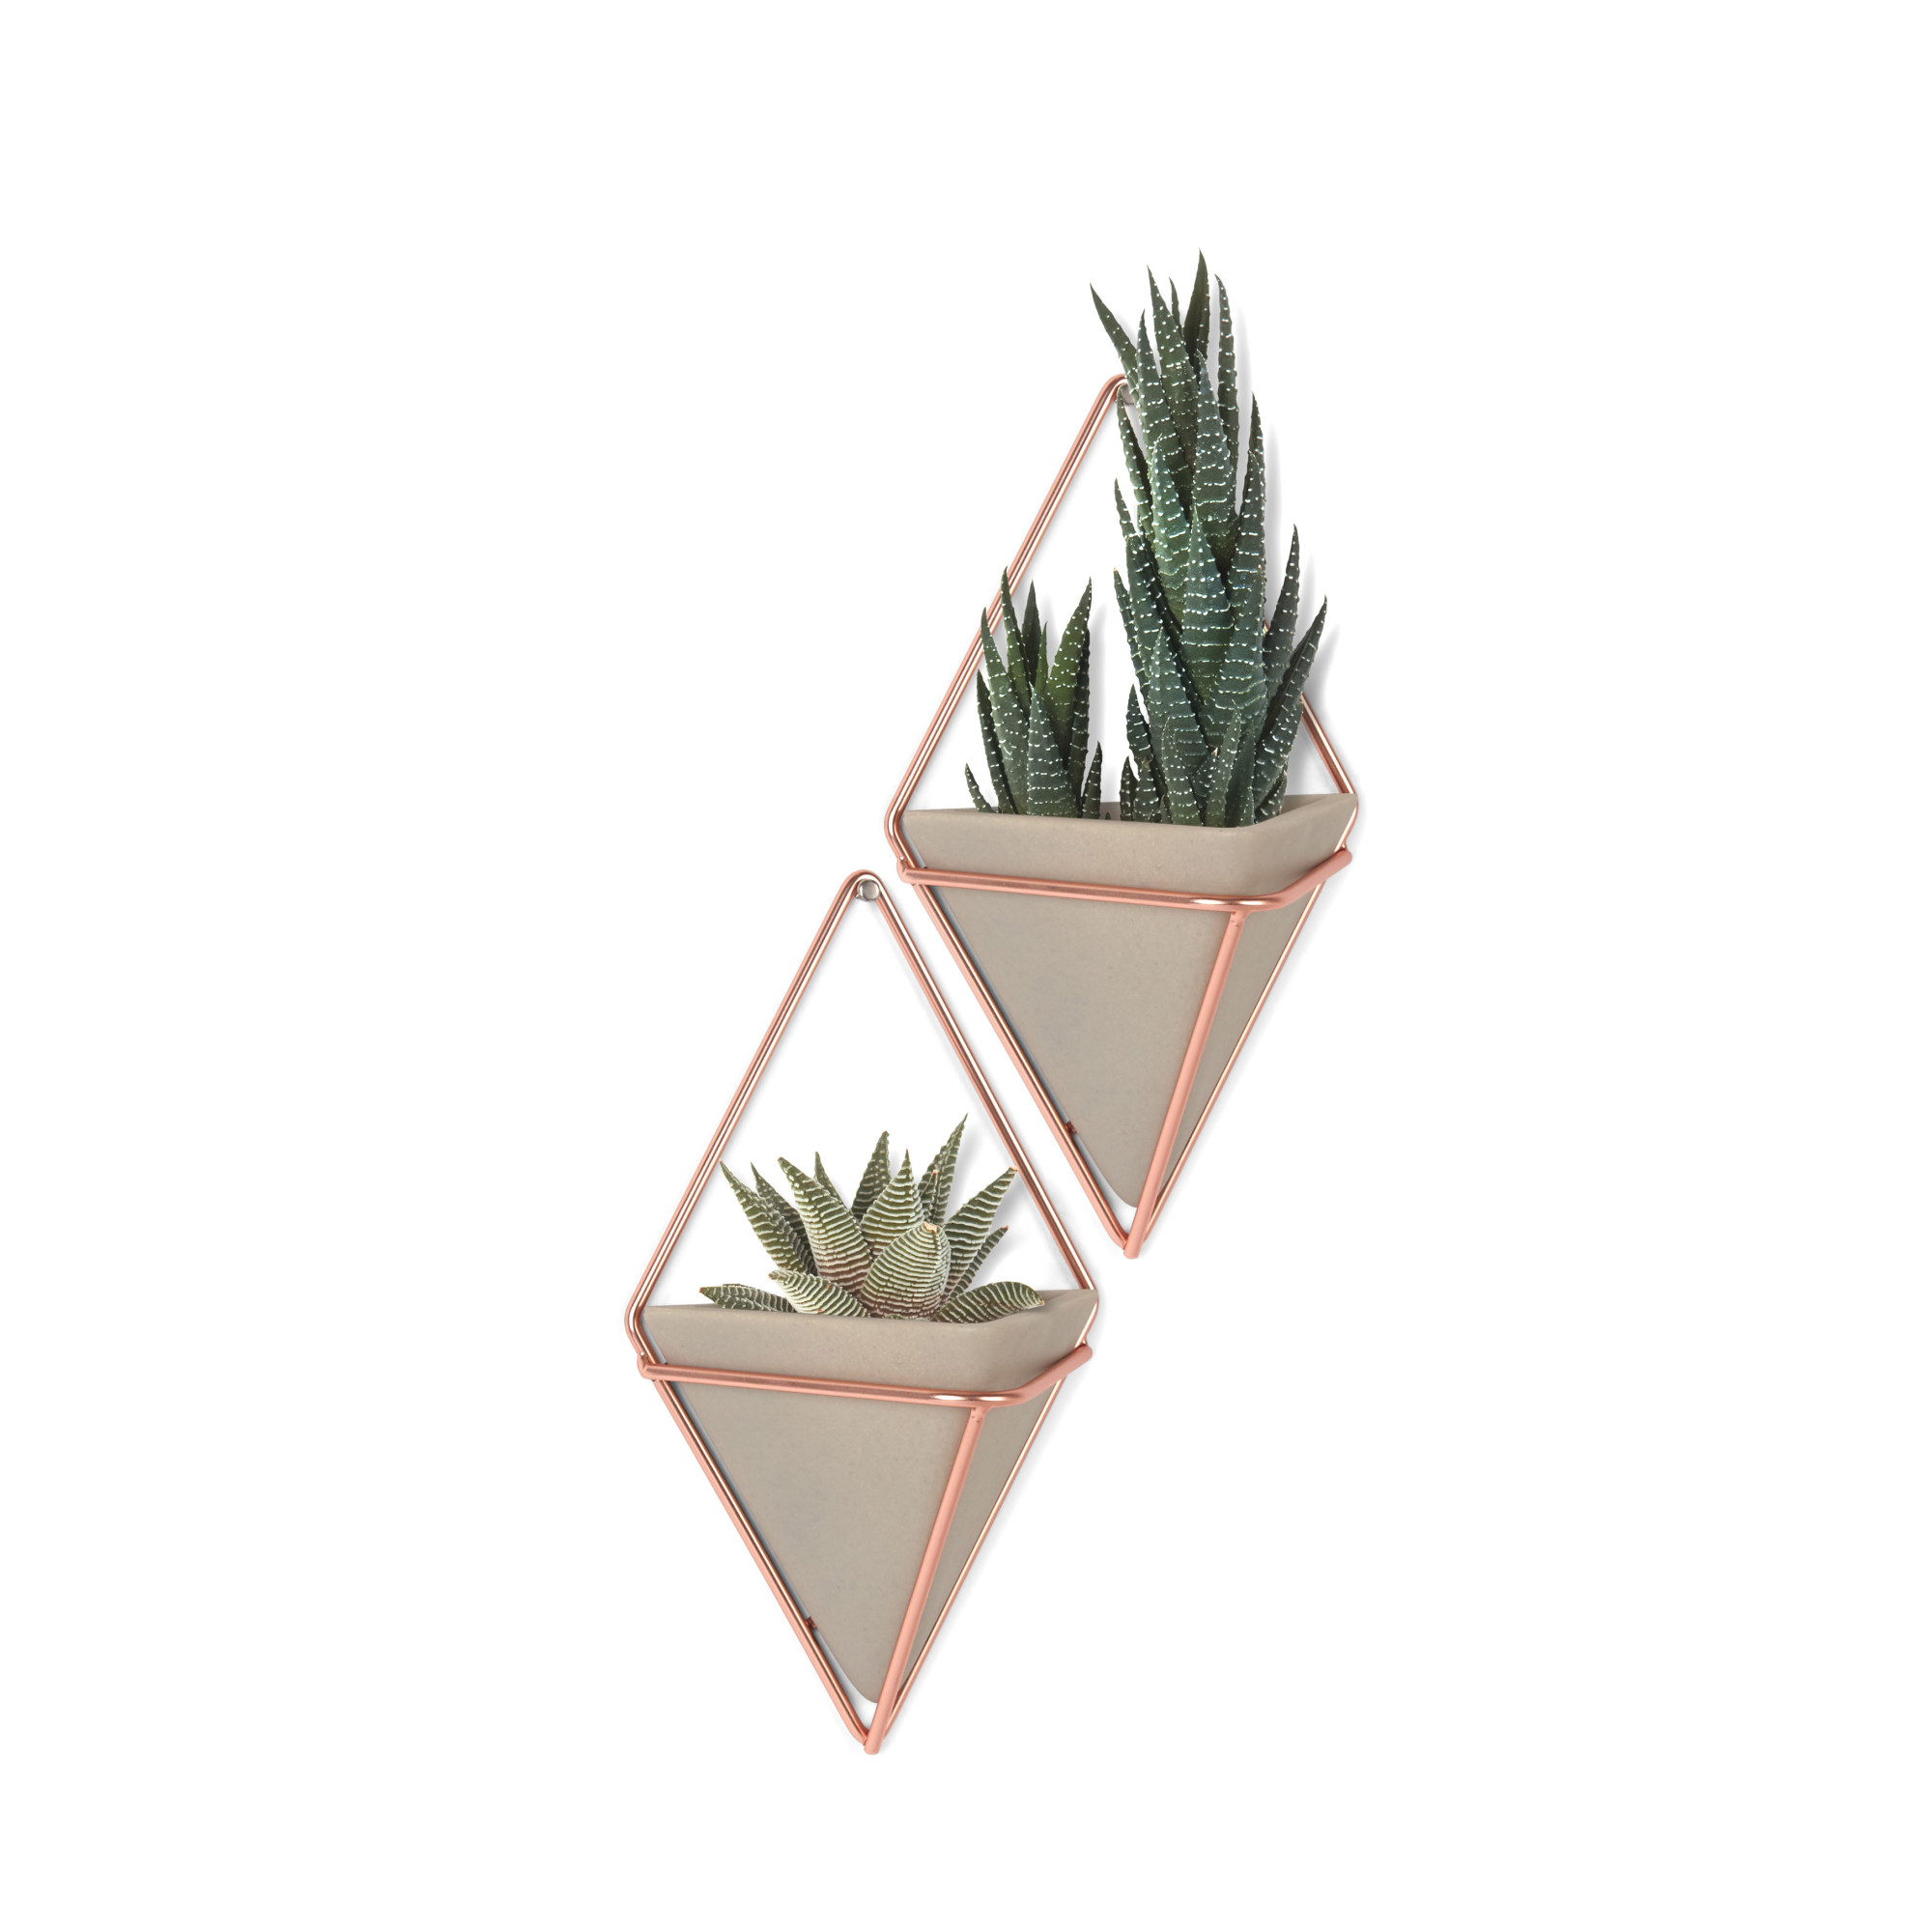 Details About Umbra 470753 Trigg Two Piece Concrete Wall Mounted Planter Set With Metal Frame With Regard To 2 Piece Trigg Wall Decor Sets (Set Of 2) (Gallery 5 of 30)